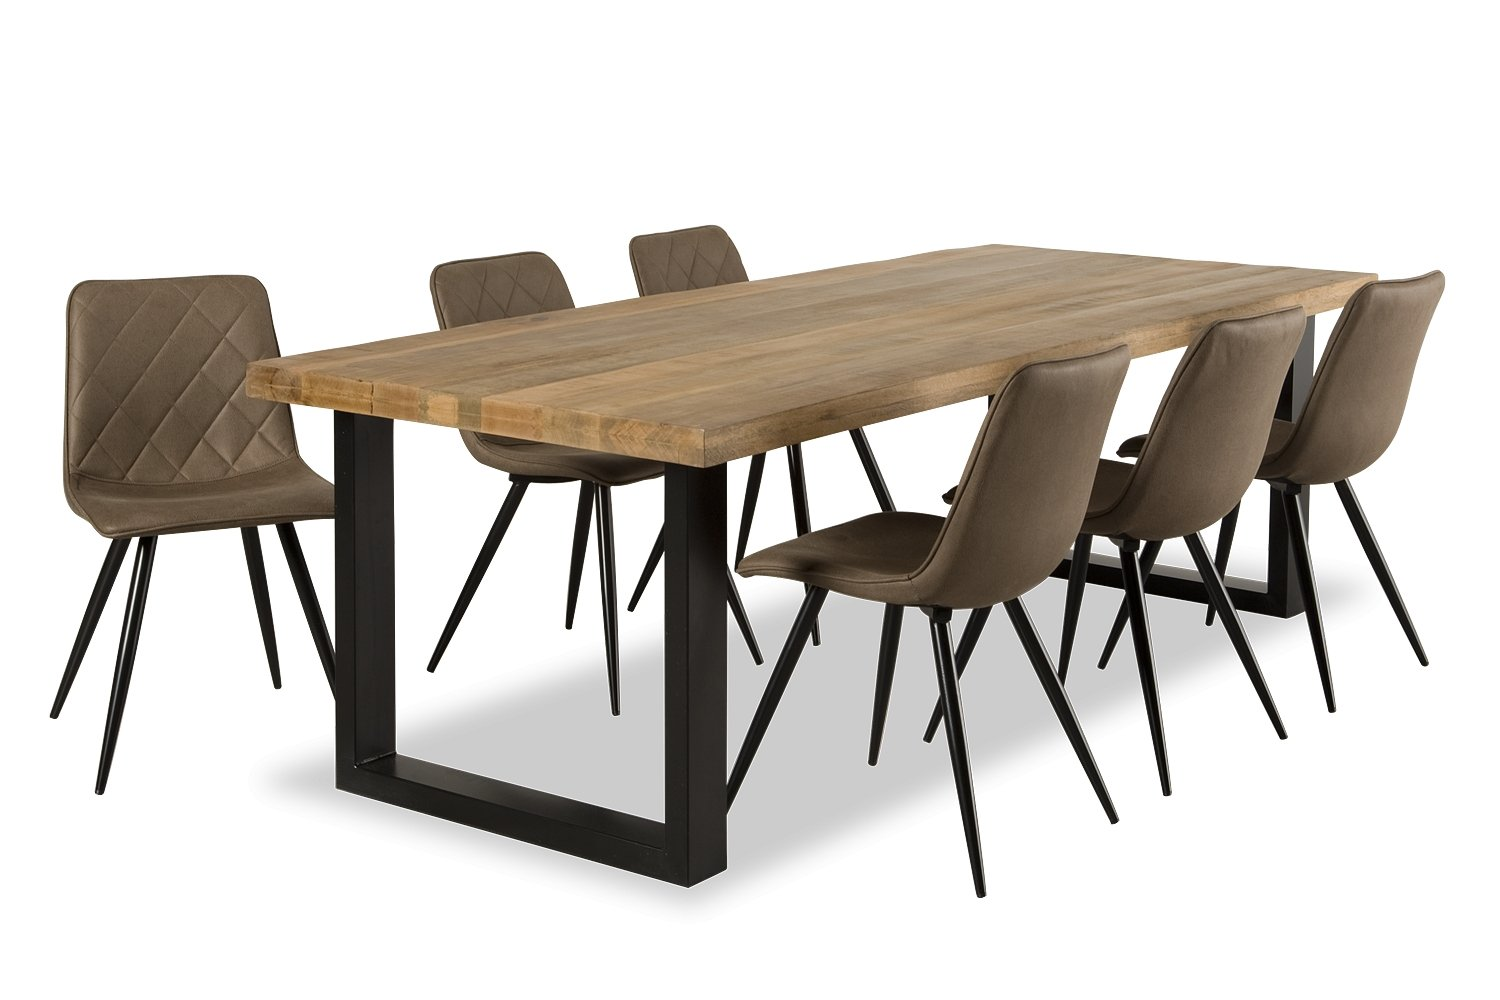 Eetkamertafel Jacob + Lot Stoelen - Woonlease